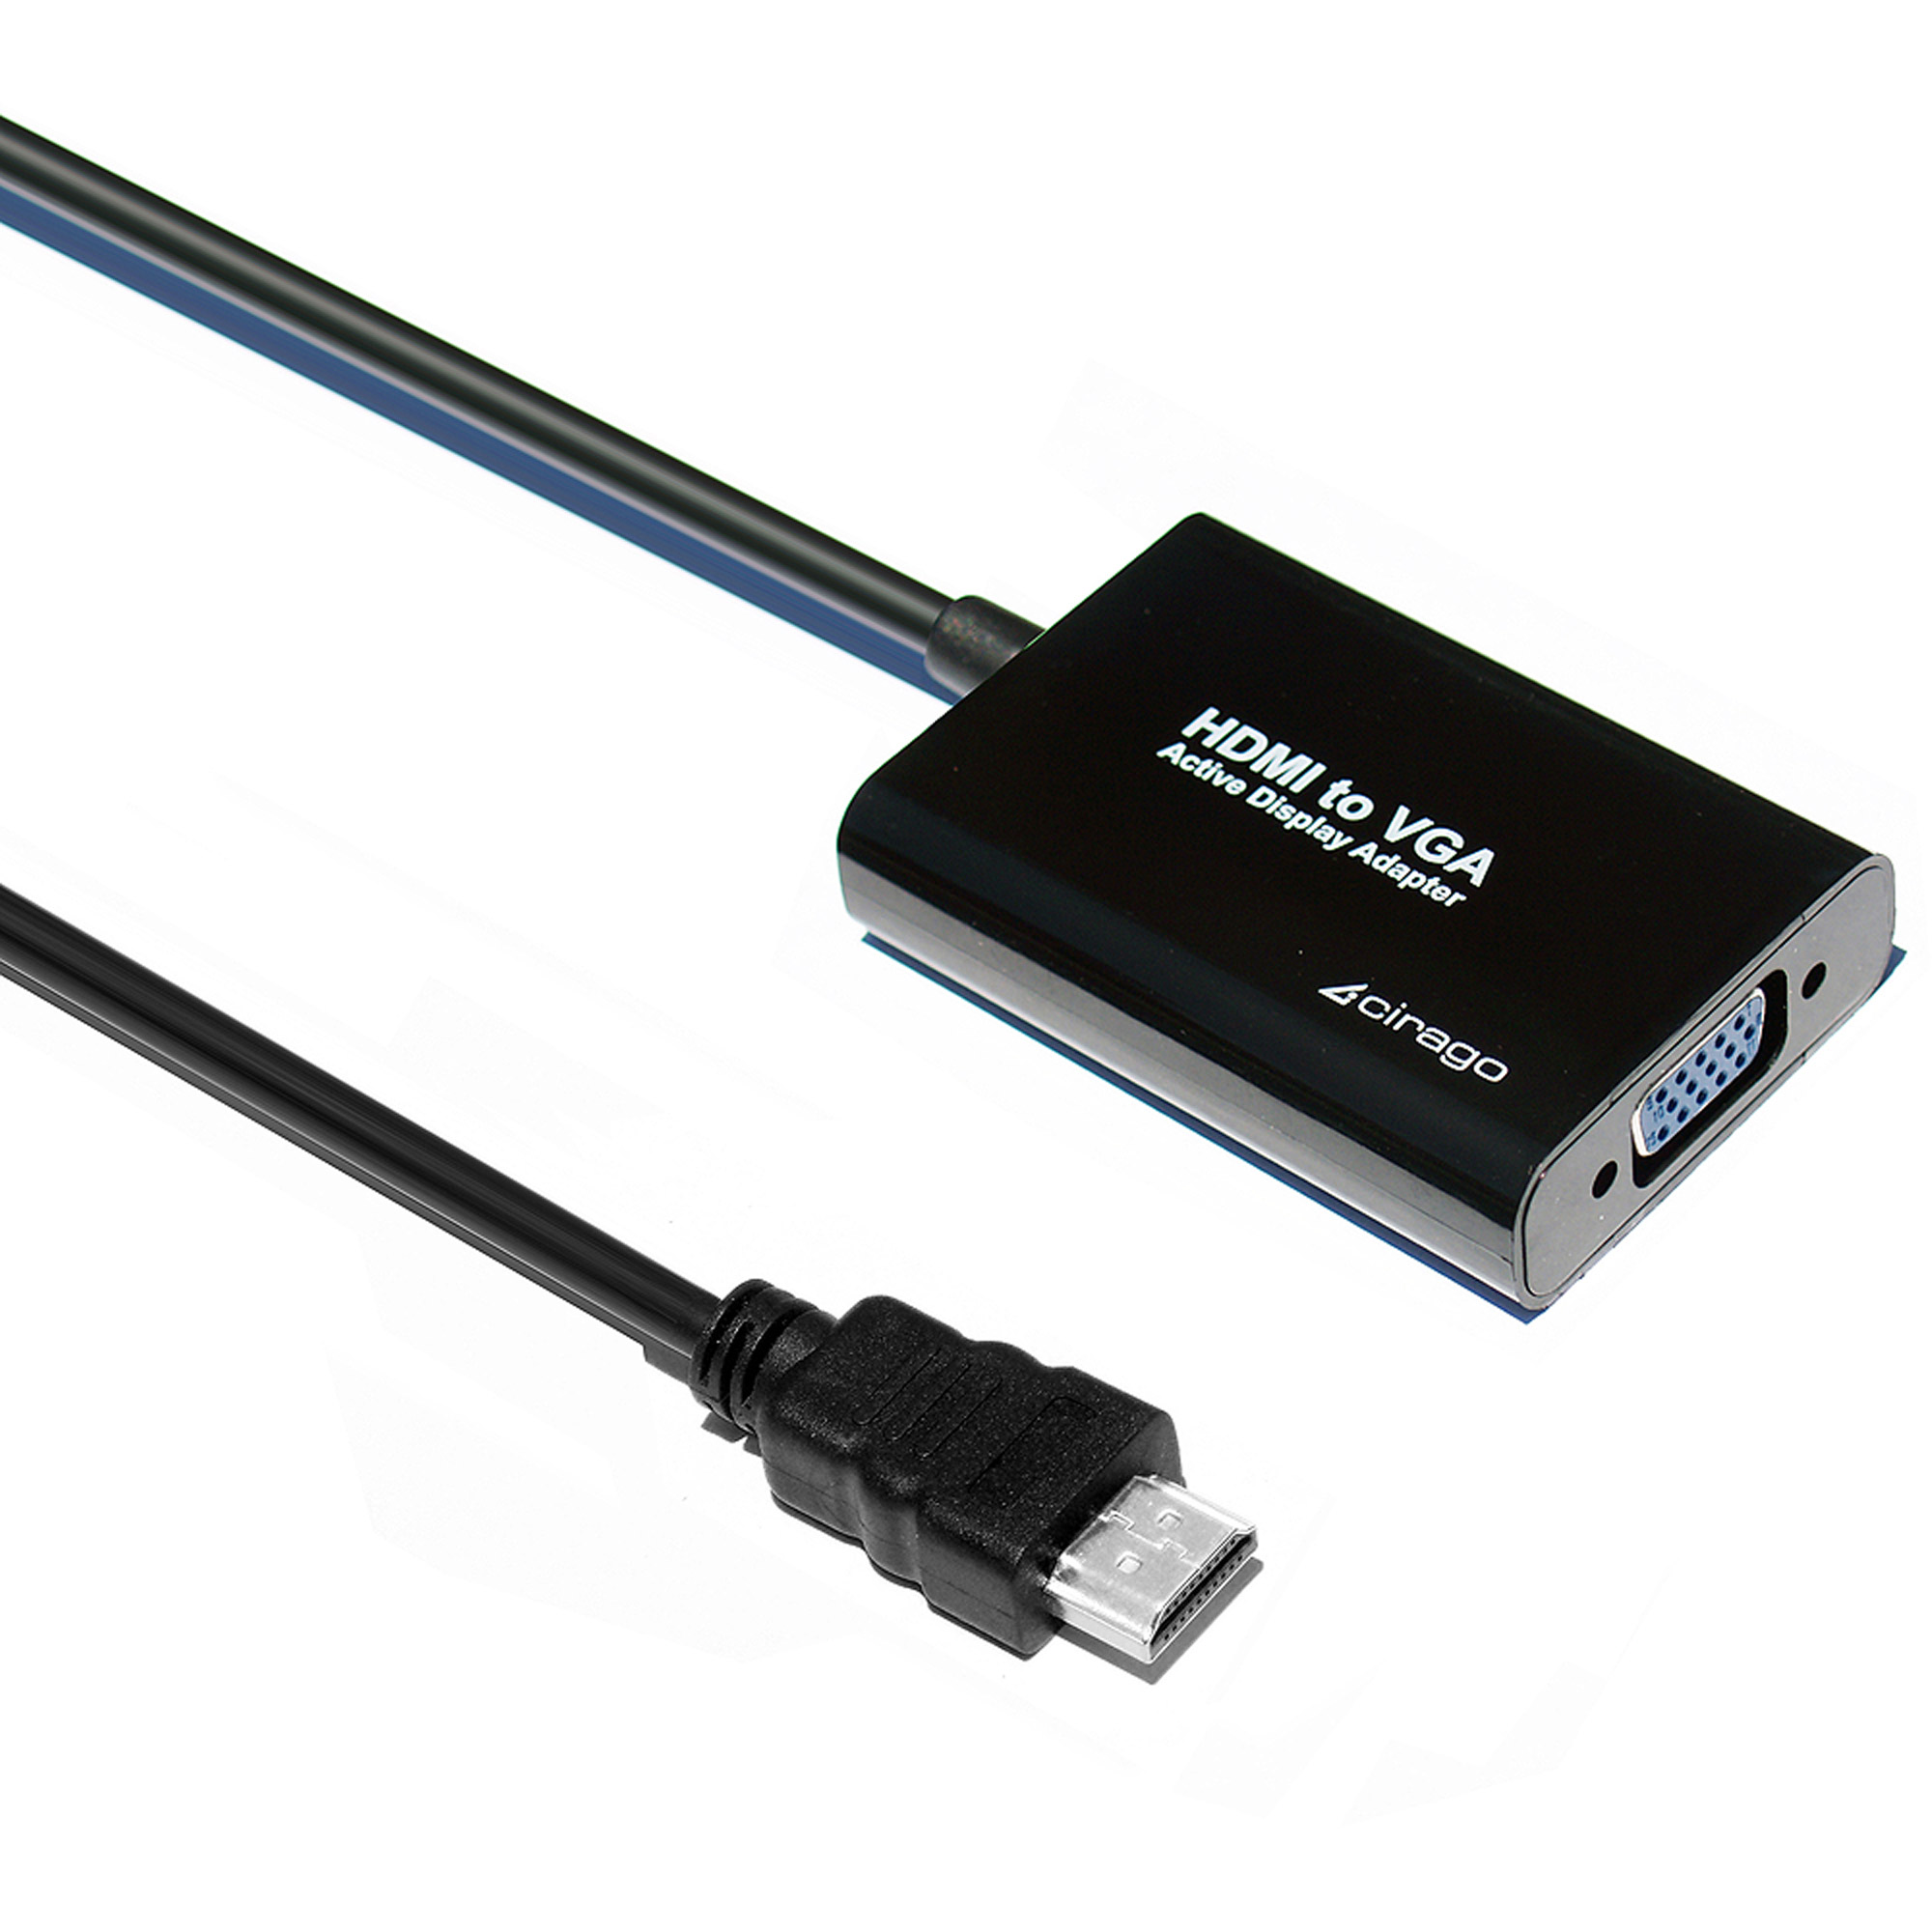 Cirago HDMVGA HDMI to VGA Display Adapter, Black